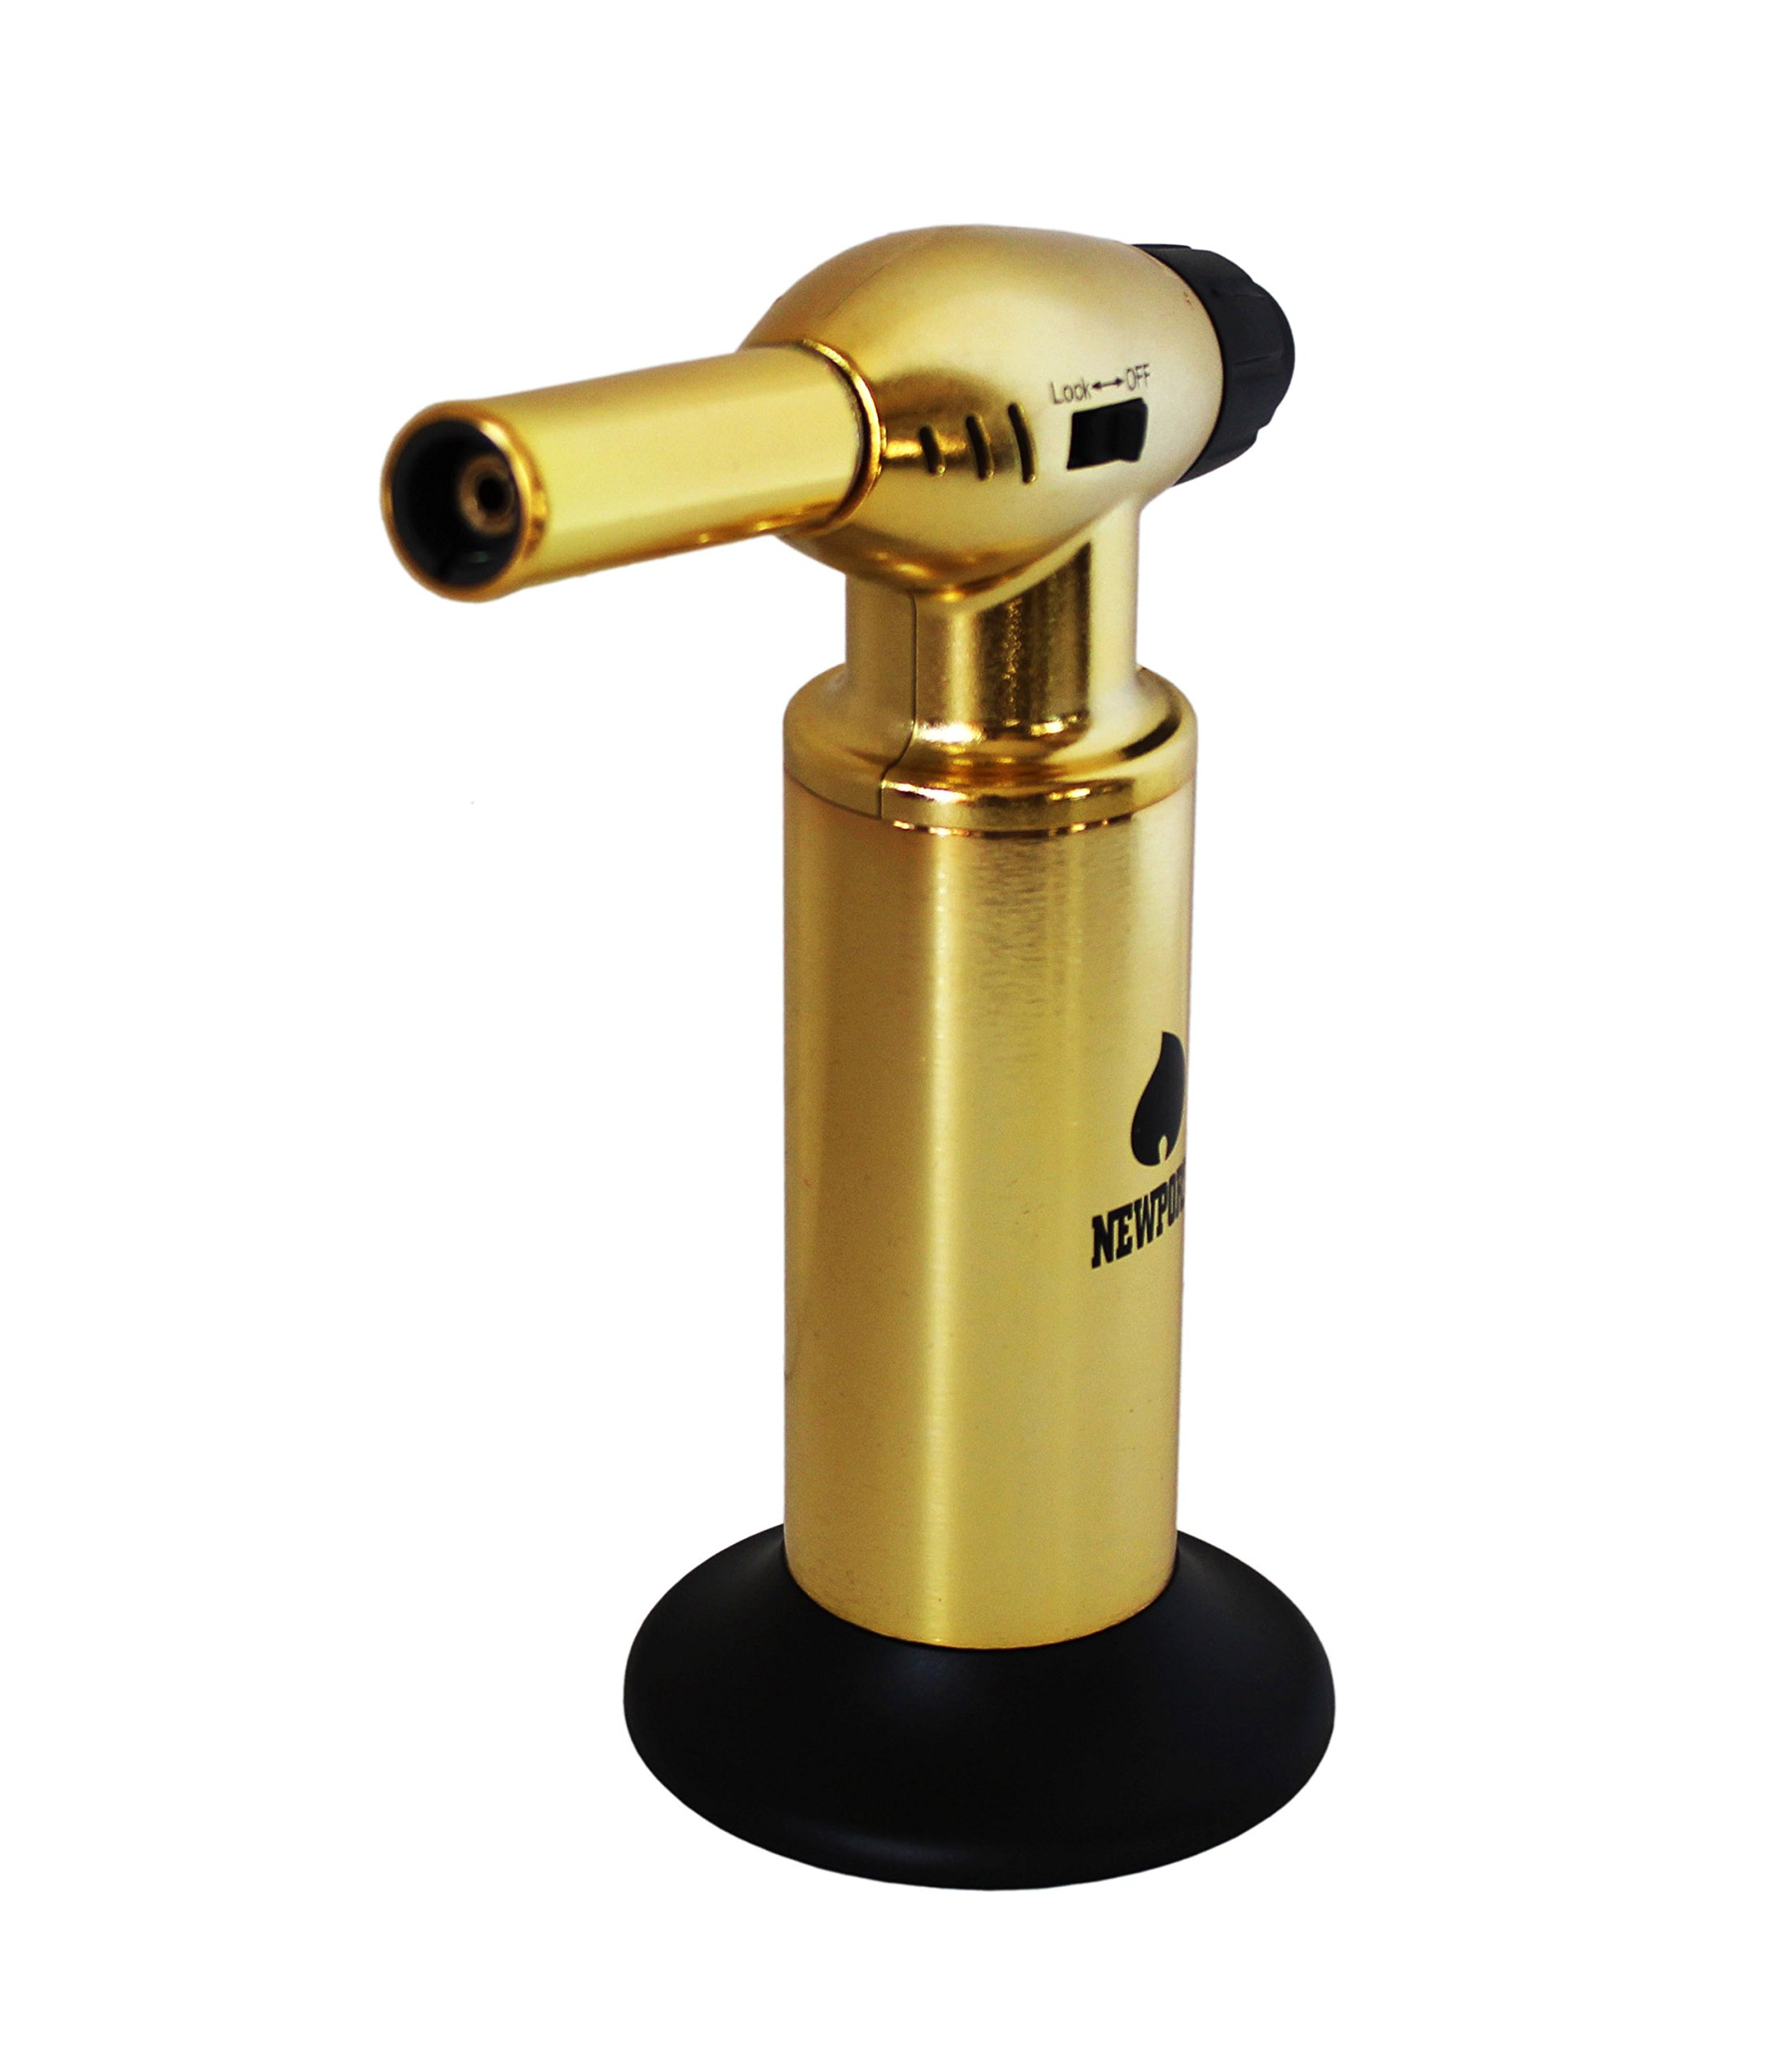 Creme Brulee Culinary Kitchen Torch - Cooking Torch & Multifunction Butane Torch Lighter - Intense Adjustable Jet Flame (Up to 2400 F) - Includes Safety Lock, Piezo Ignition, and Quick Refill System - 10'' Gold by Newport (Image #6)